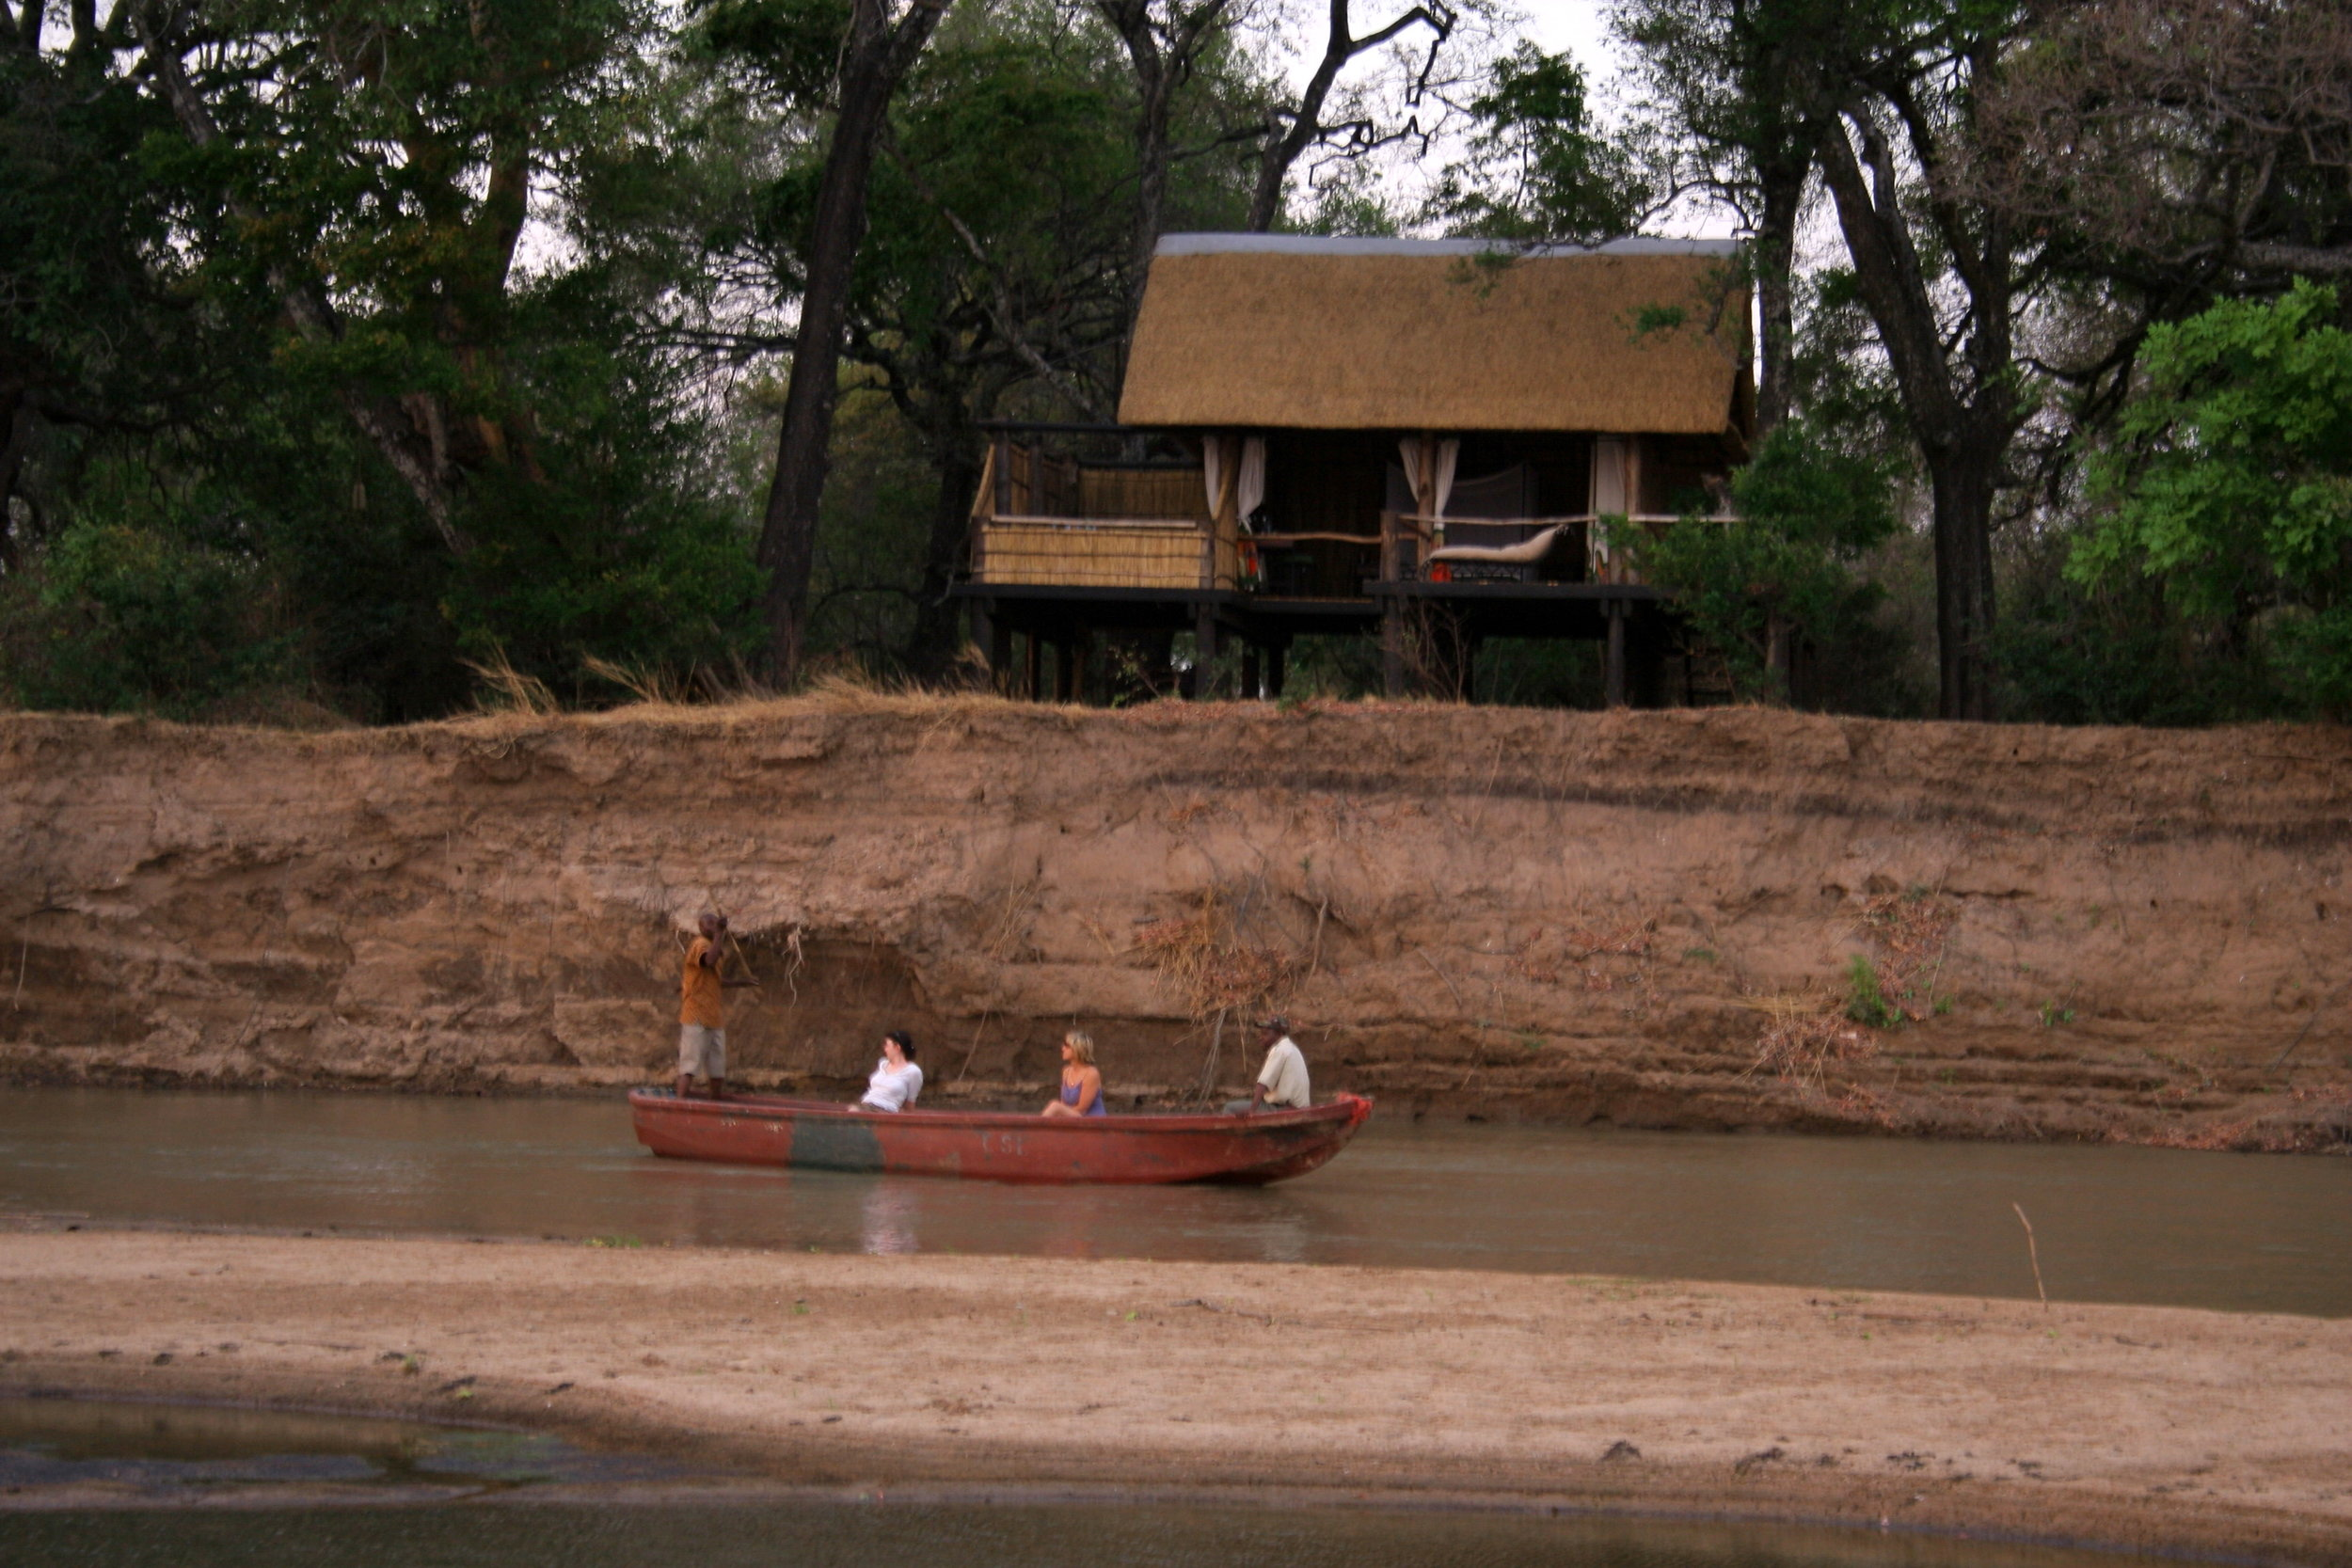 Chindeni Bushcamp on the Luangwa River.